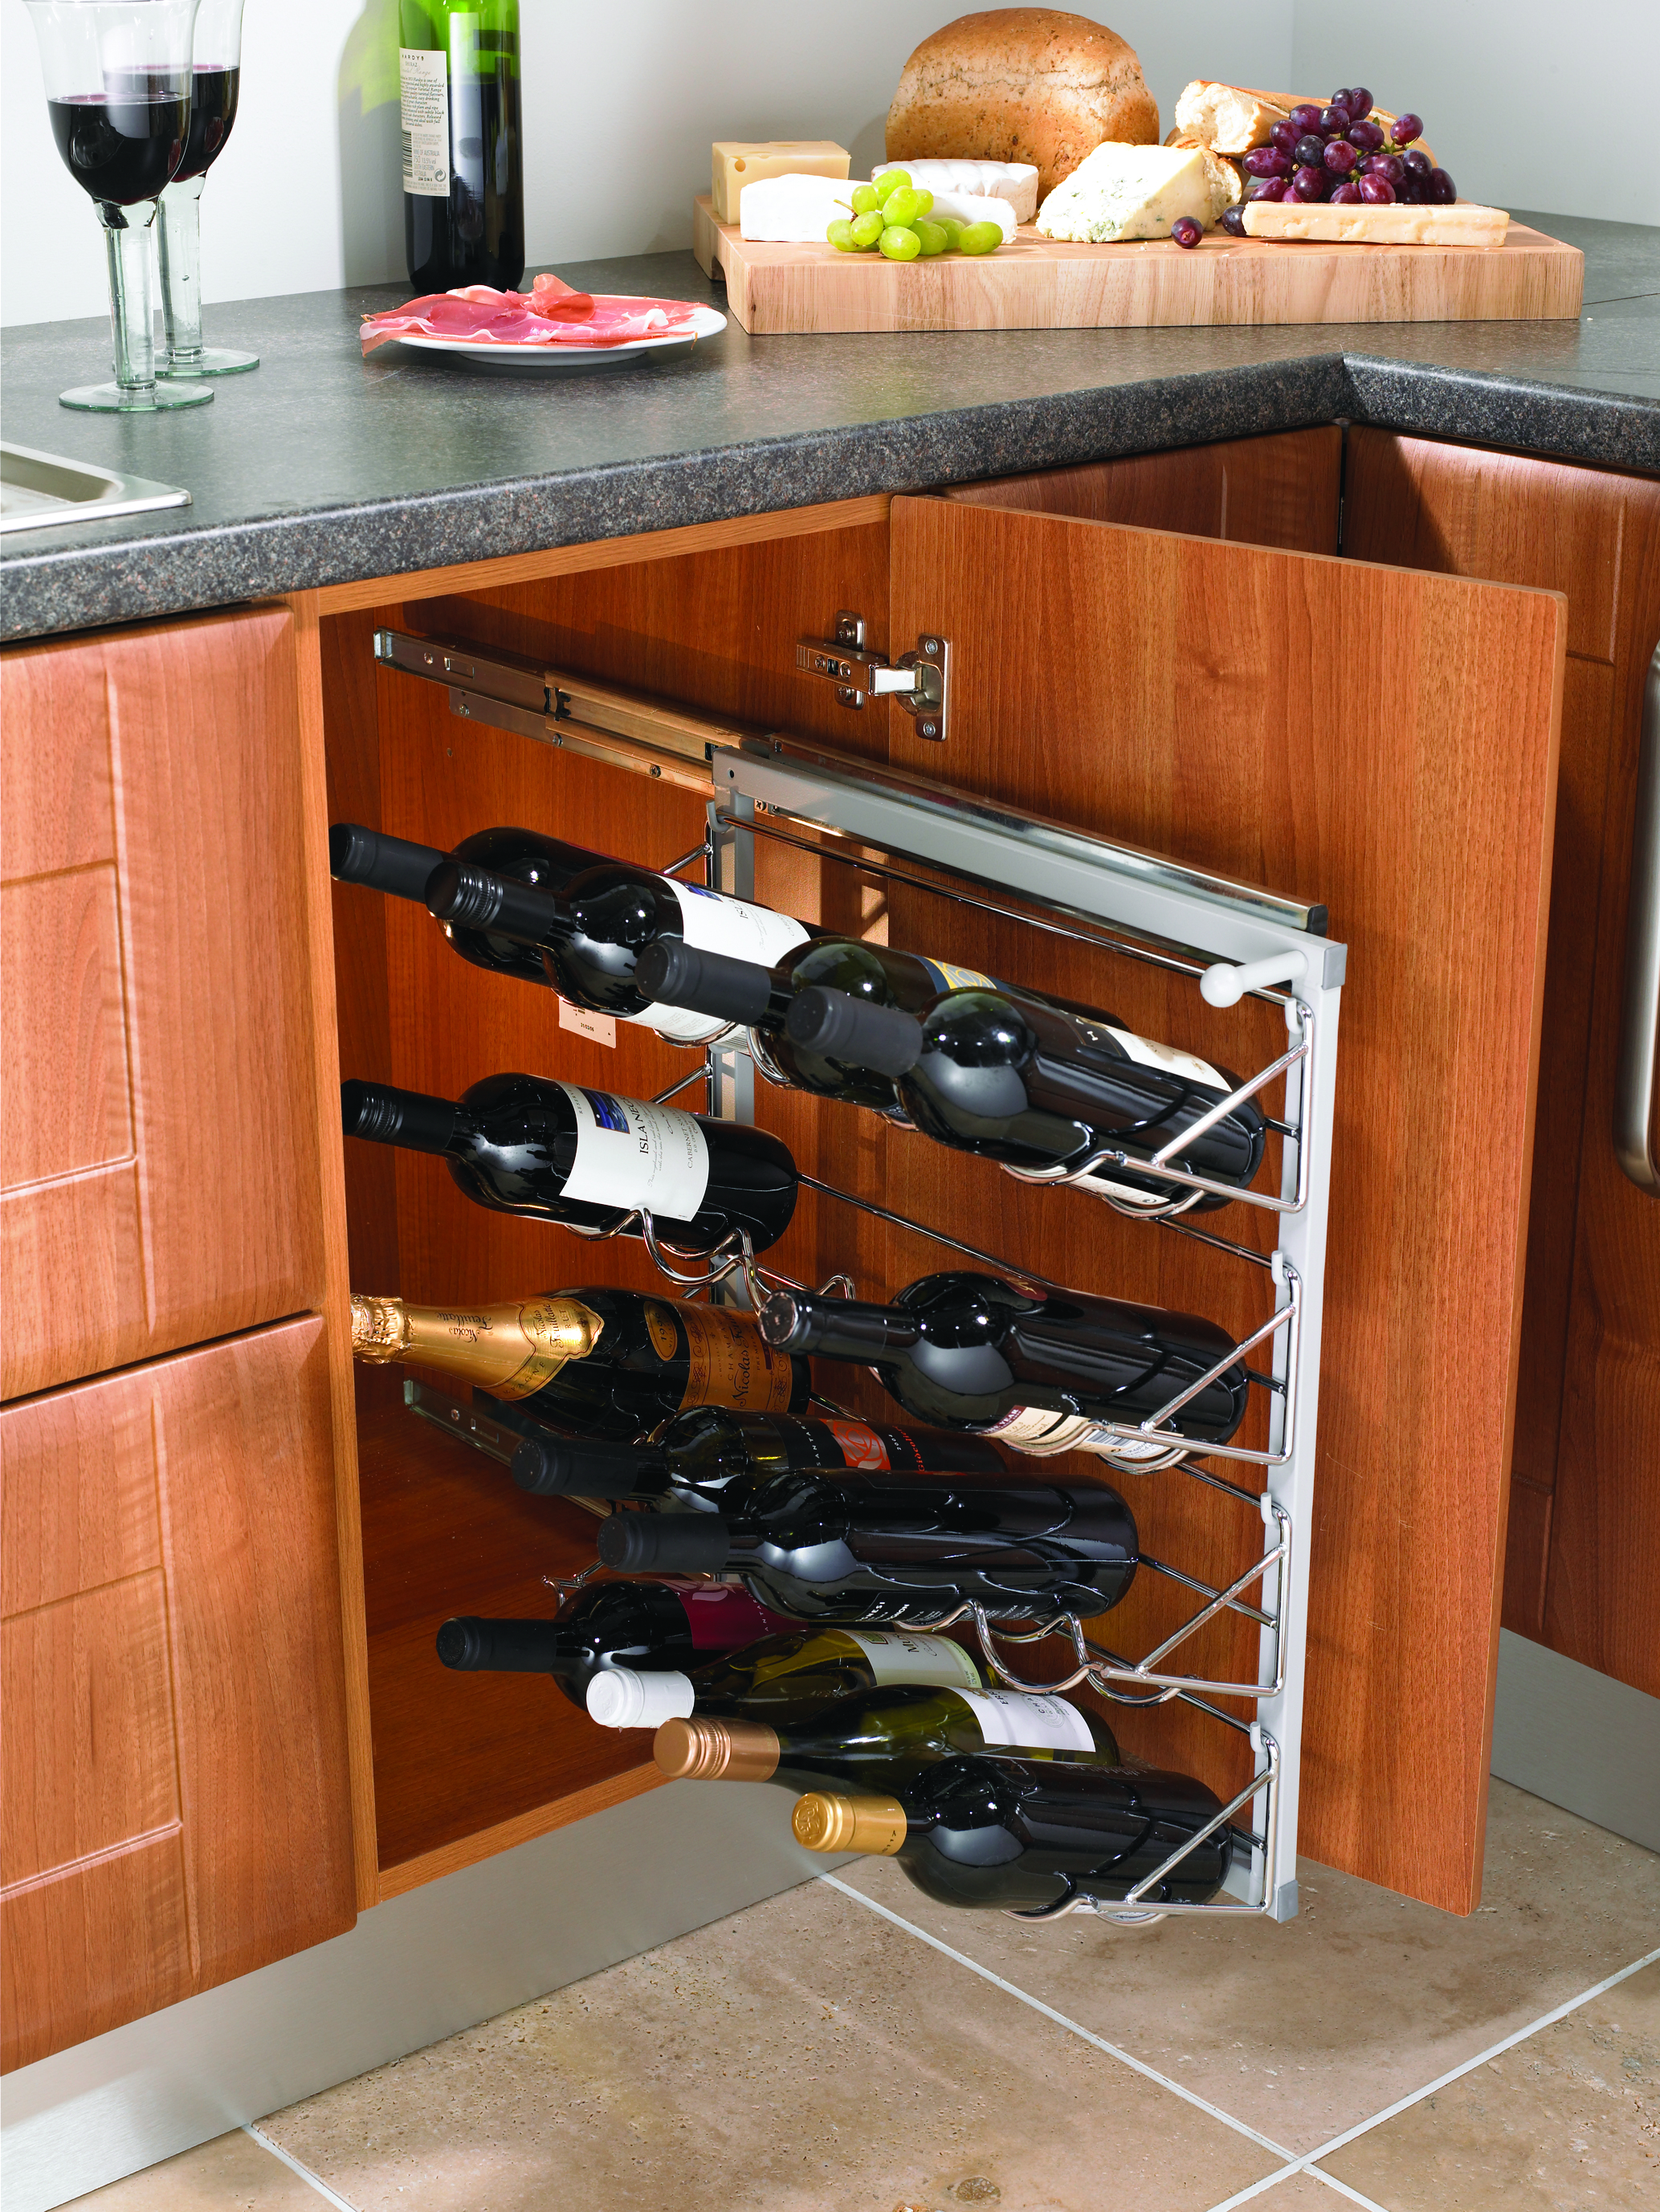 Wine racks for your kitchen for Other uses for wine racks in kitchen